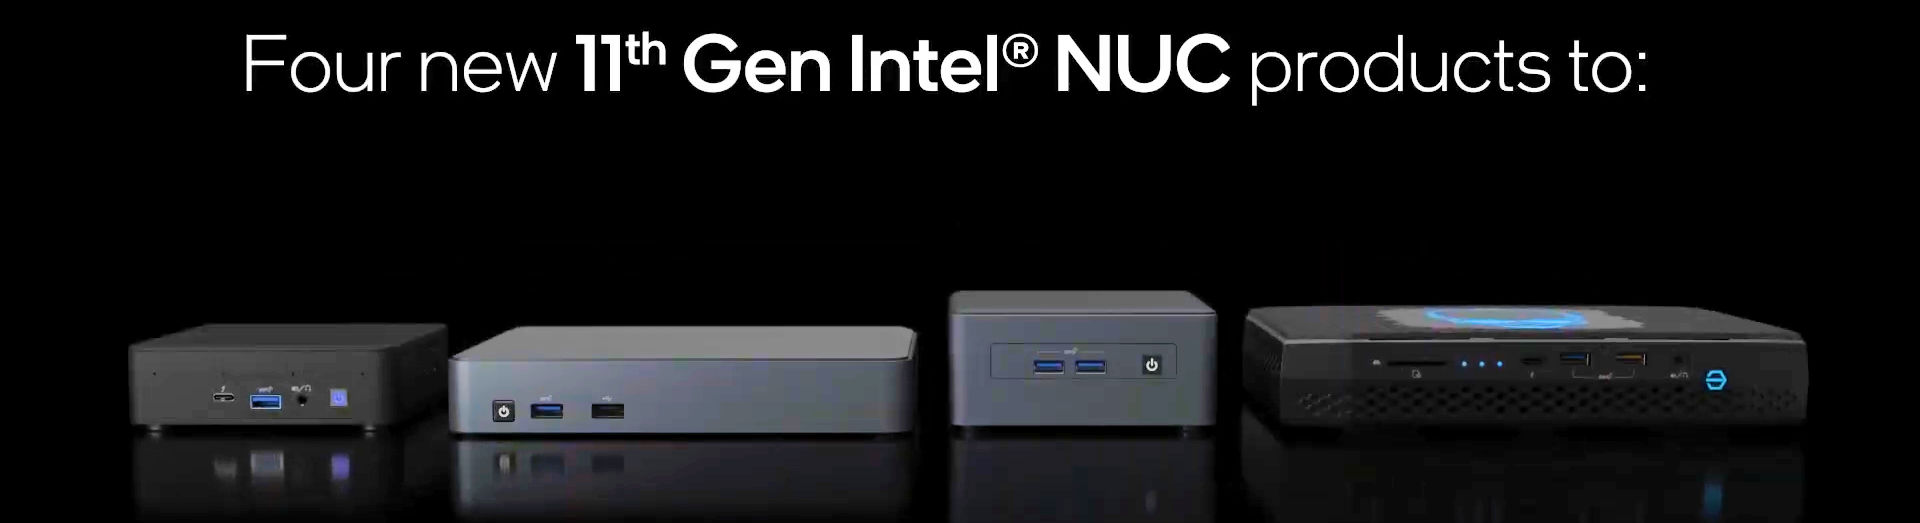 Intel-NUC-11-Series